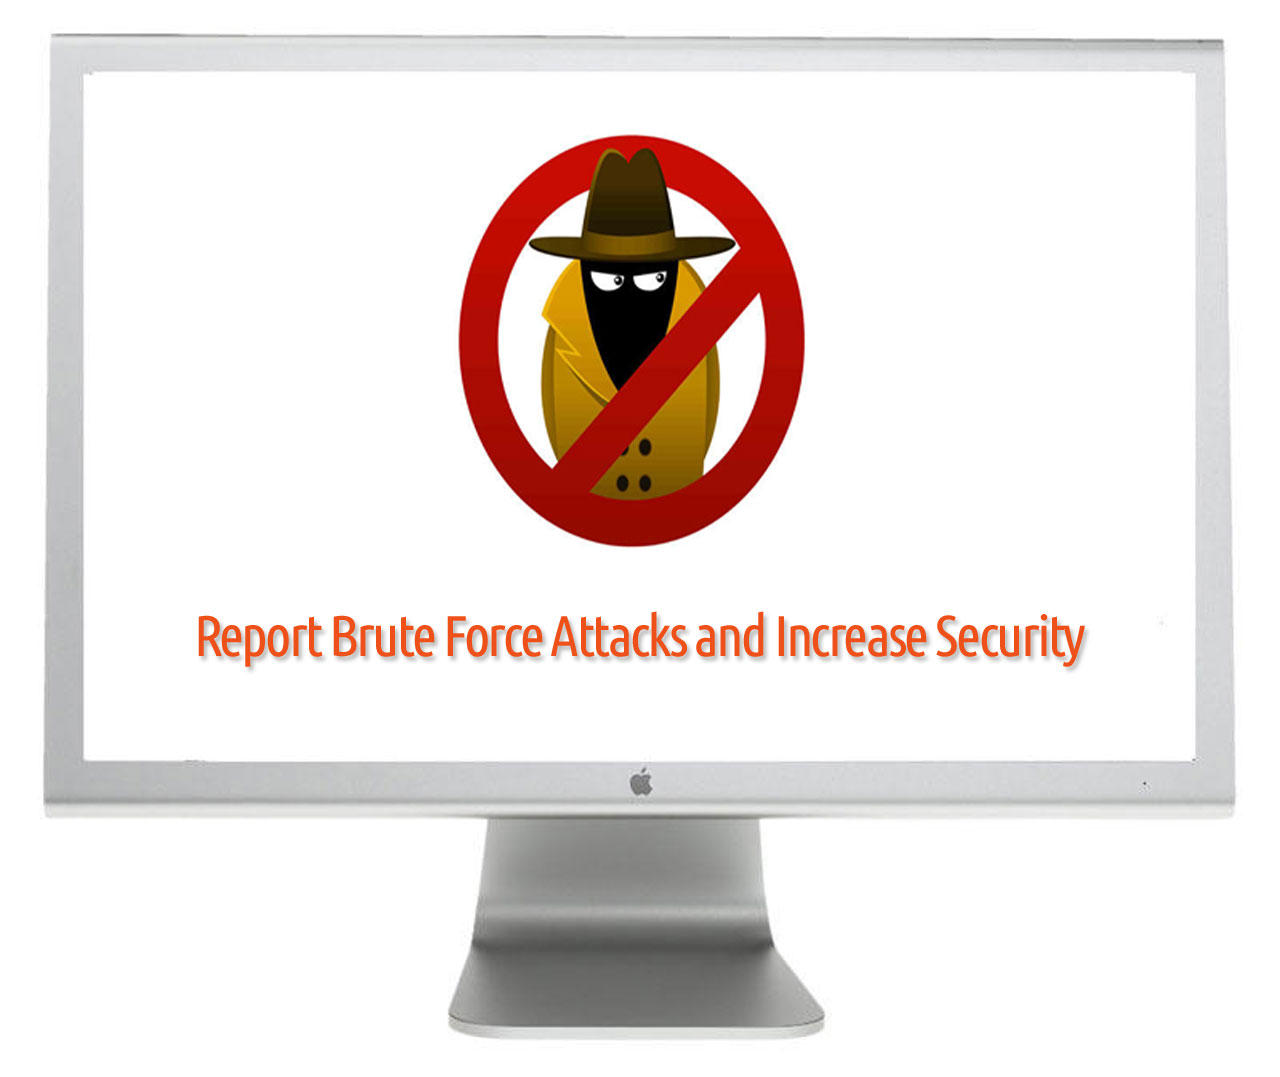 Report Login Brute Force Attacks and Improve Security by billminozzi - 101736